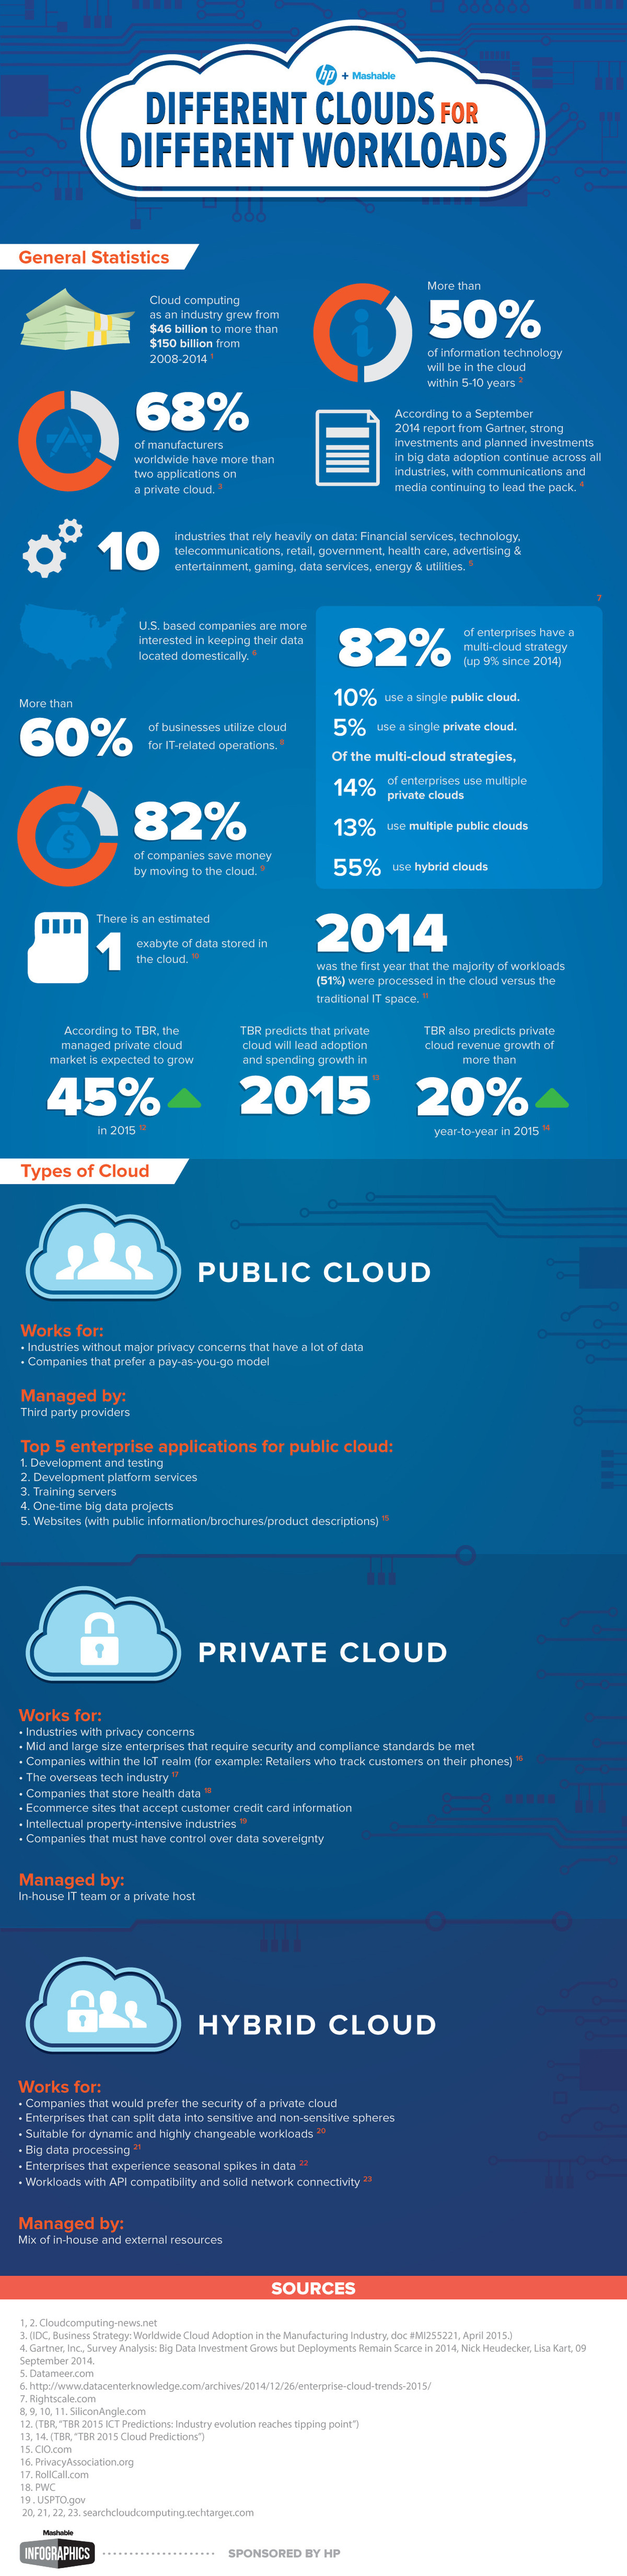 different-clouds-for-different-workloads-infographic